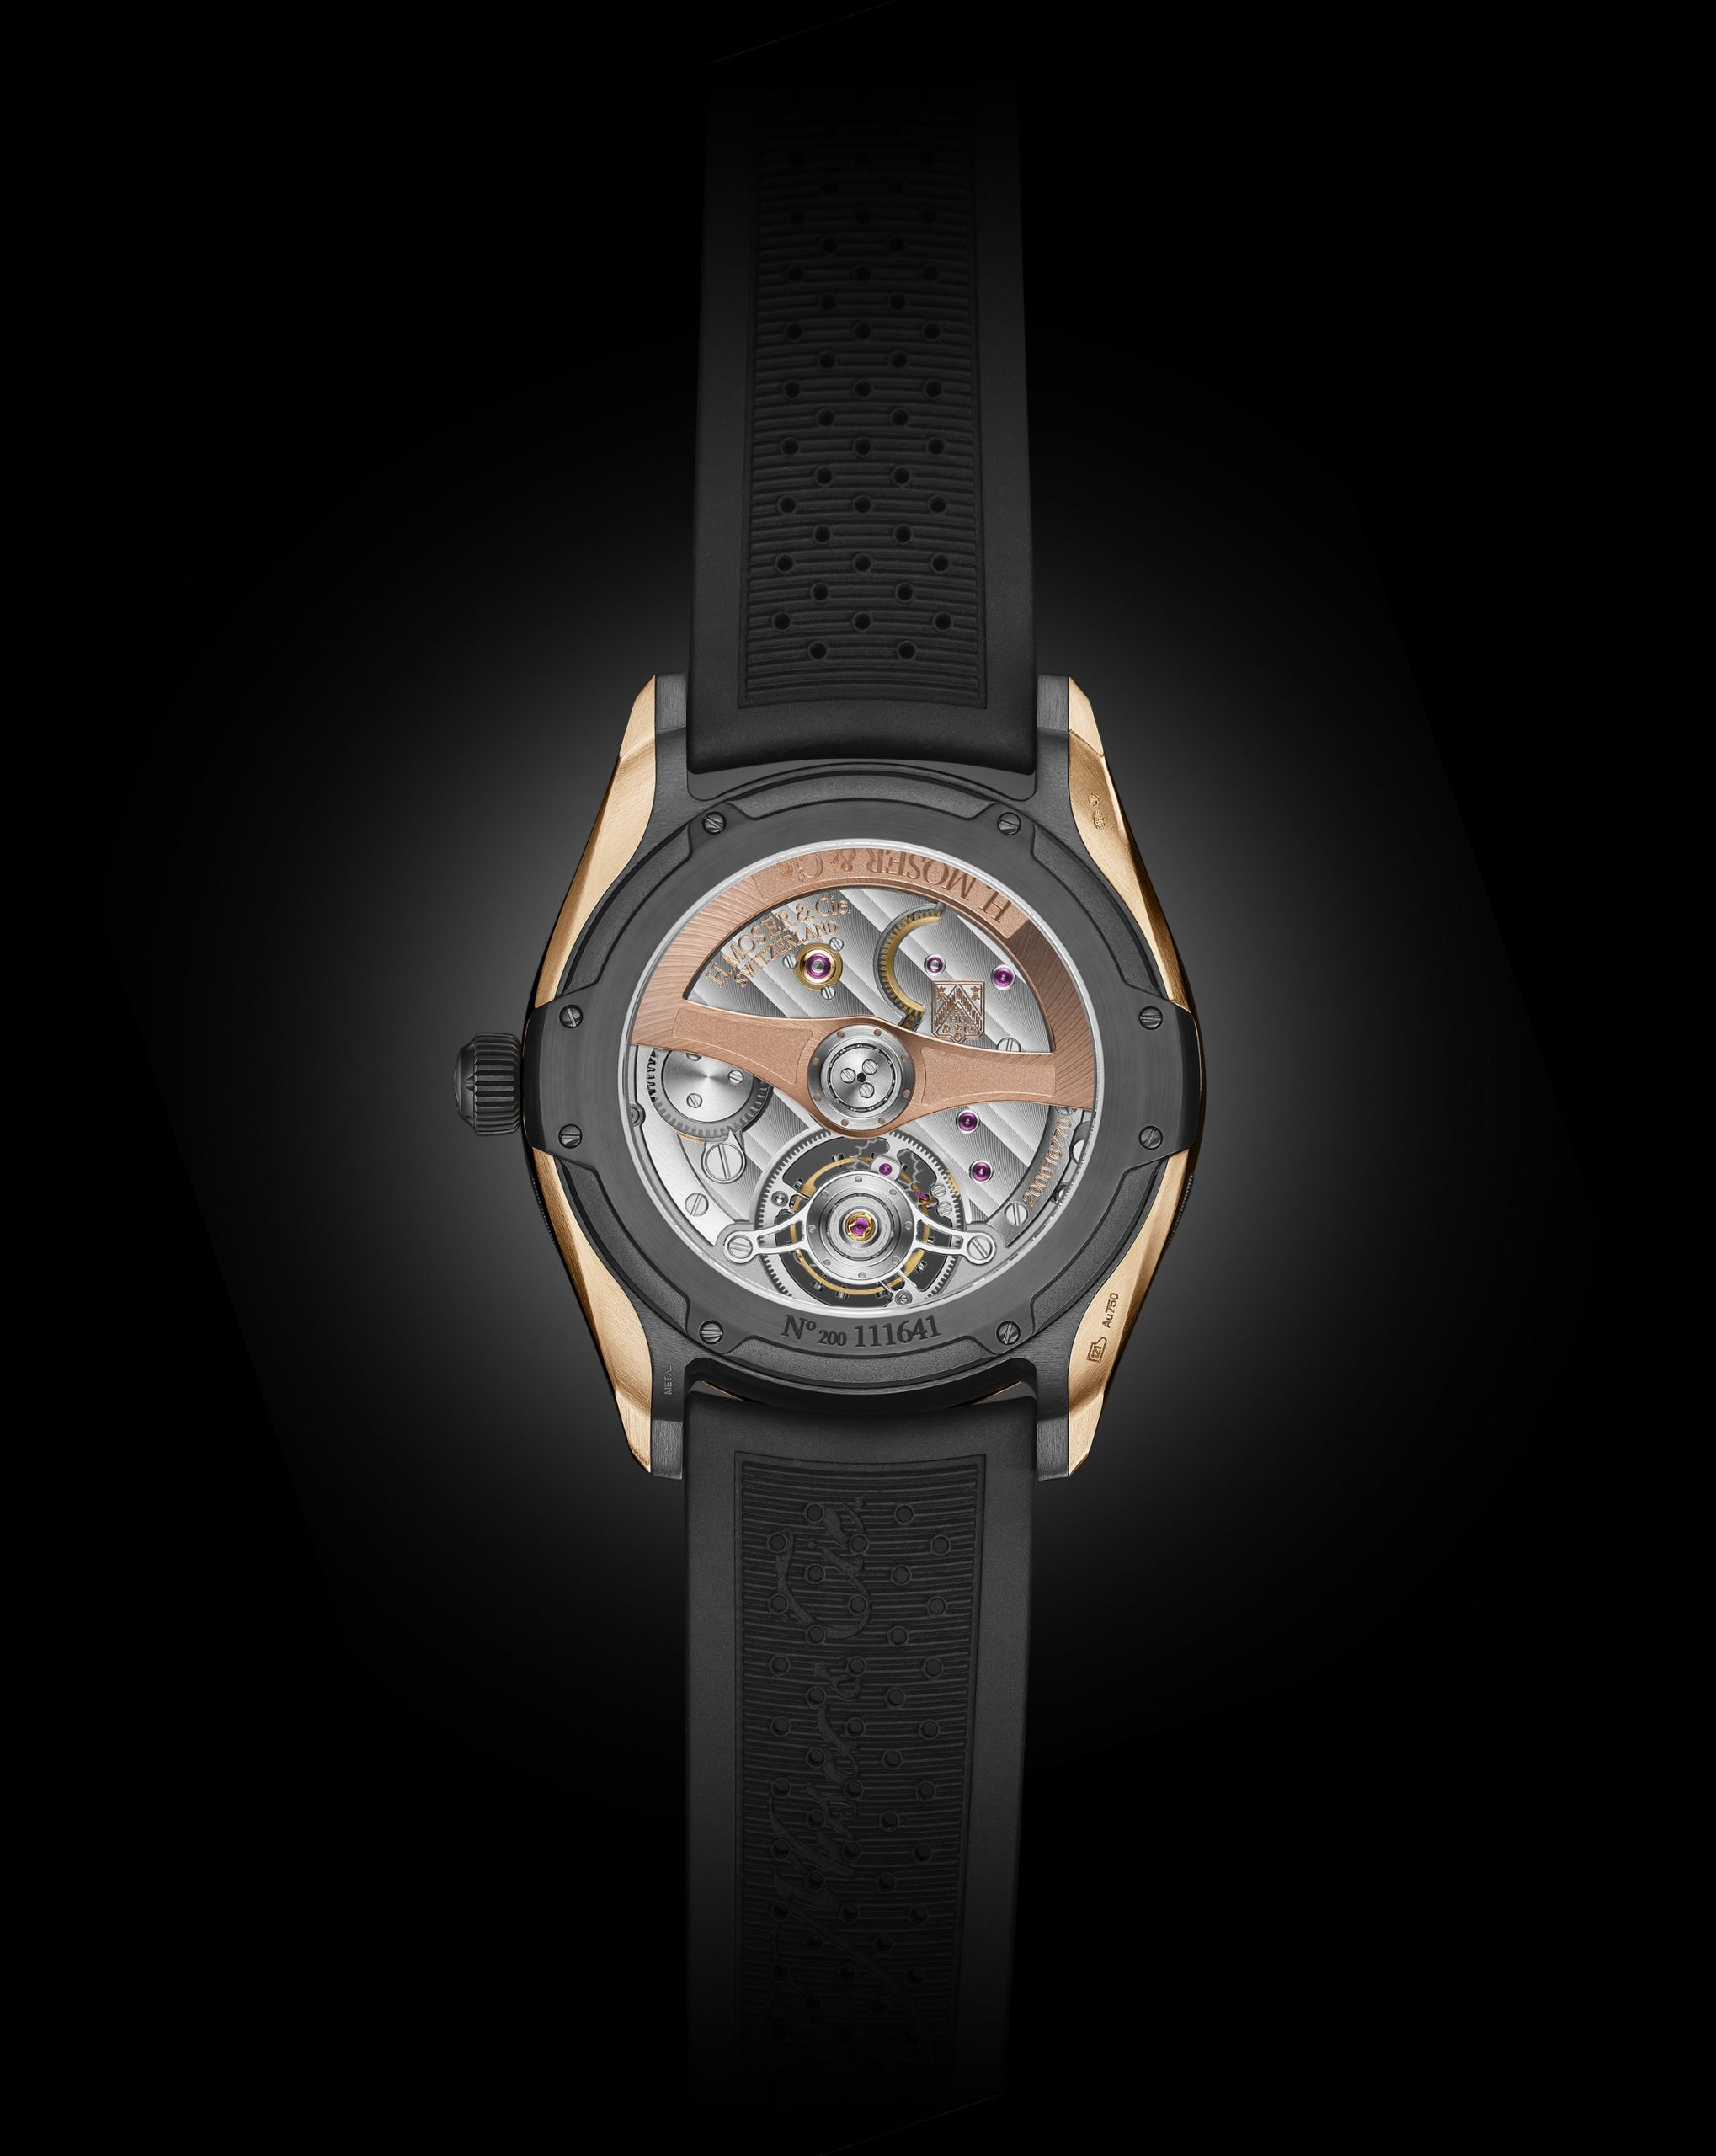 Moser Pioneer Tourbillon back